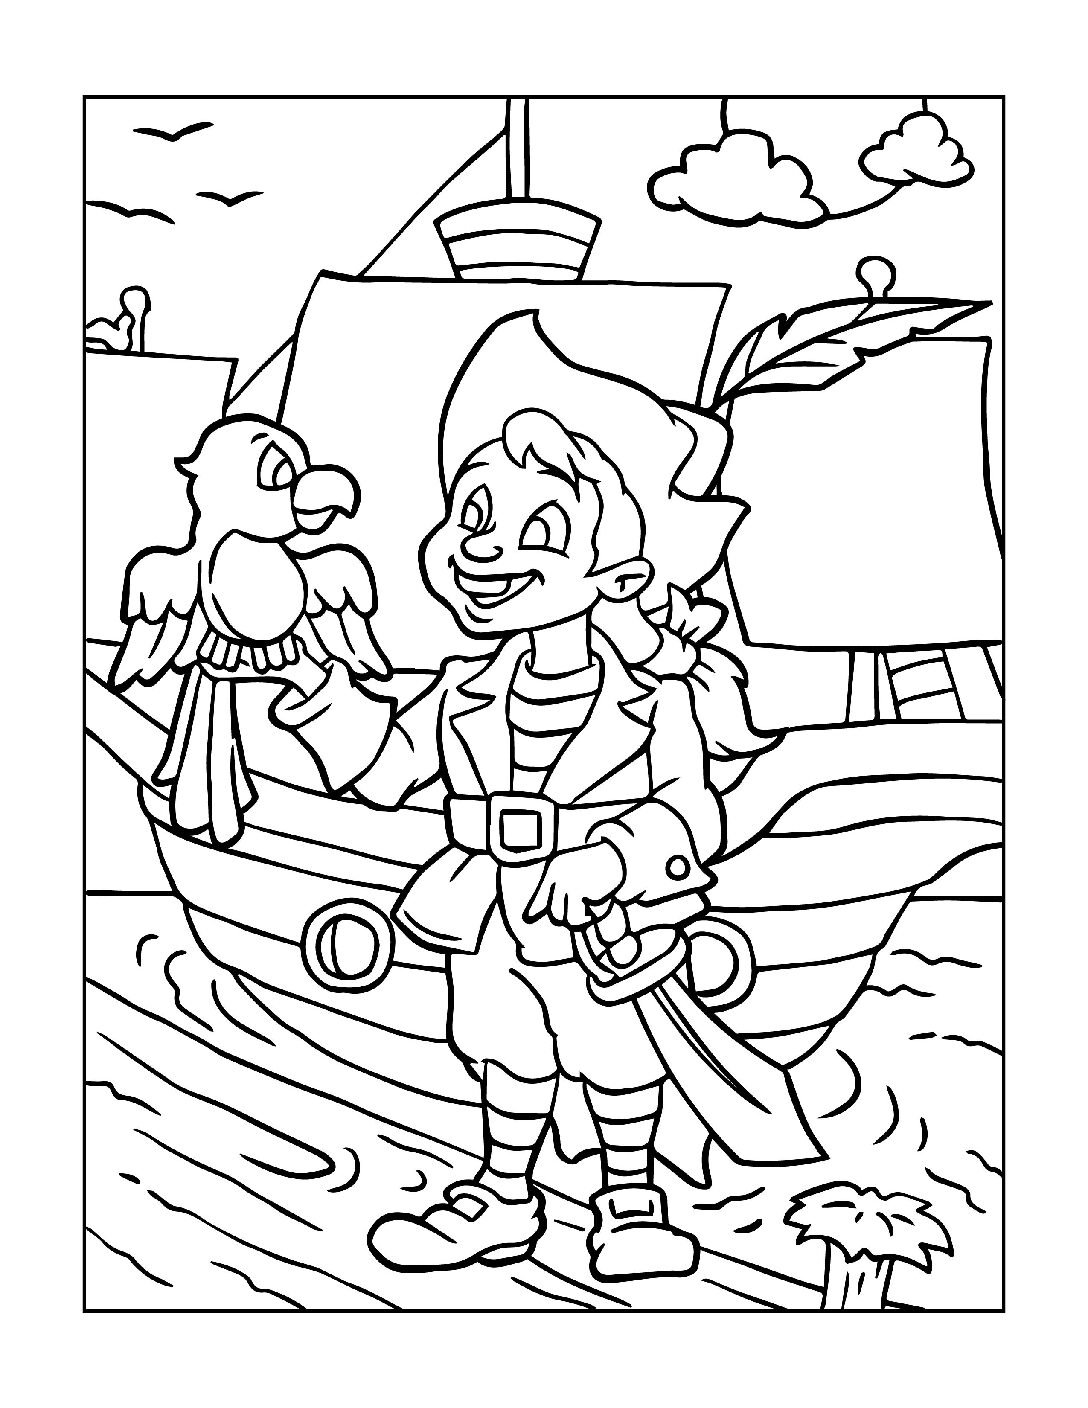 Coloring-Pages-Pirates-and-Knights-for-Boys-3-01-pdf Free Printable Pirates &  Knights Colouring Pages